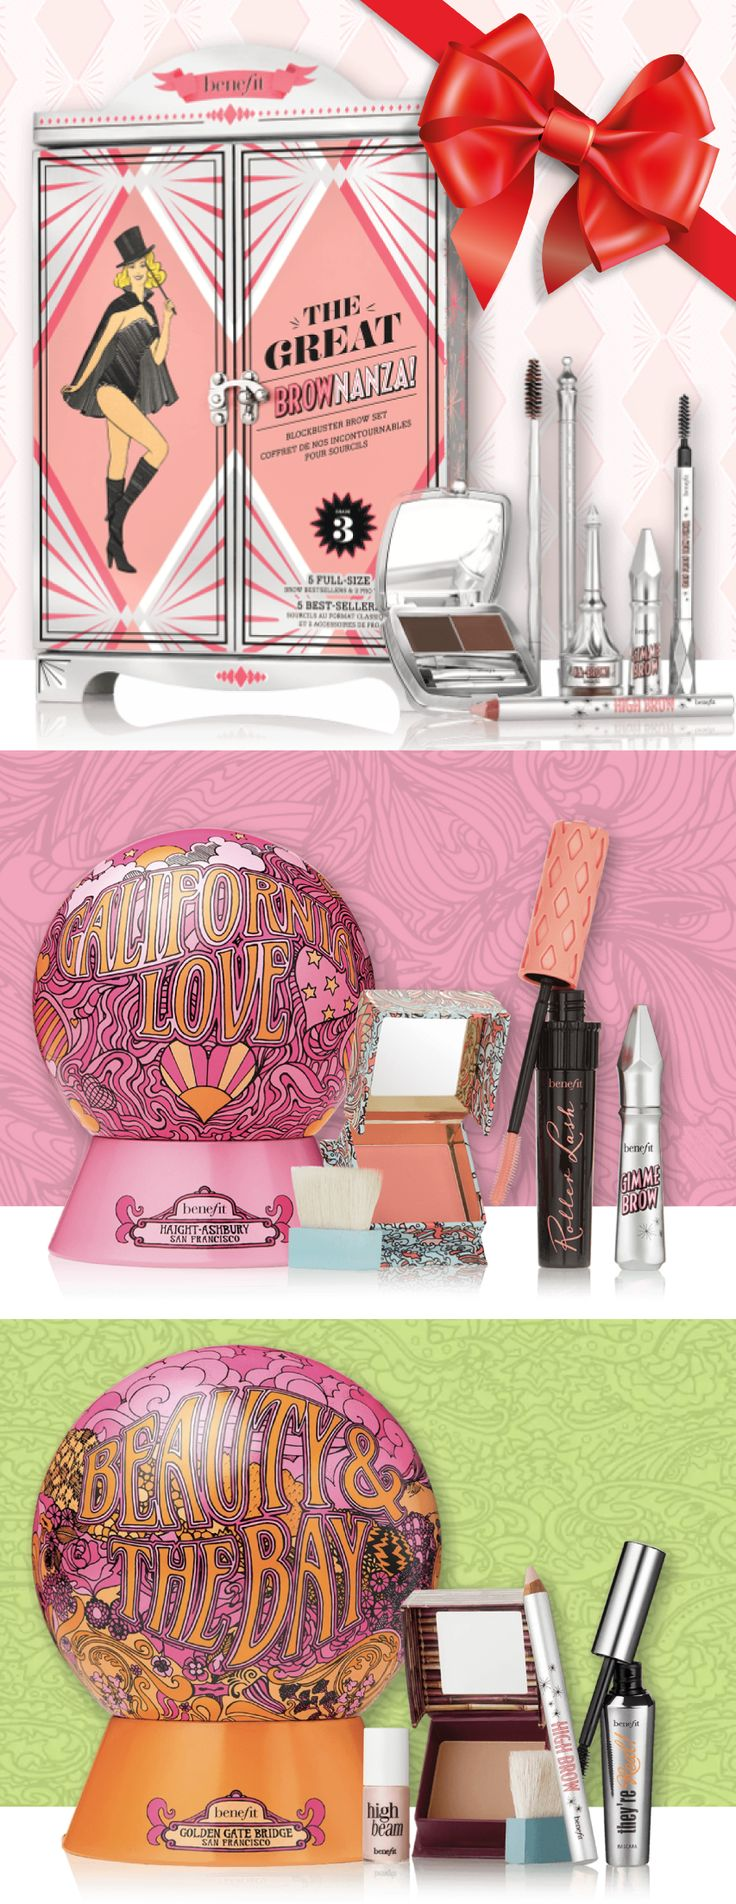 The Benefit Sets are out for Christmas 2017 and we want them all!